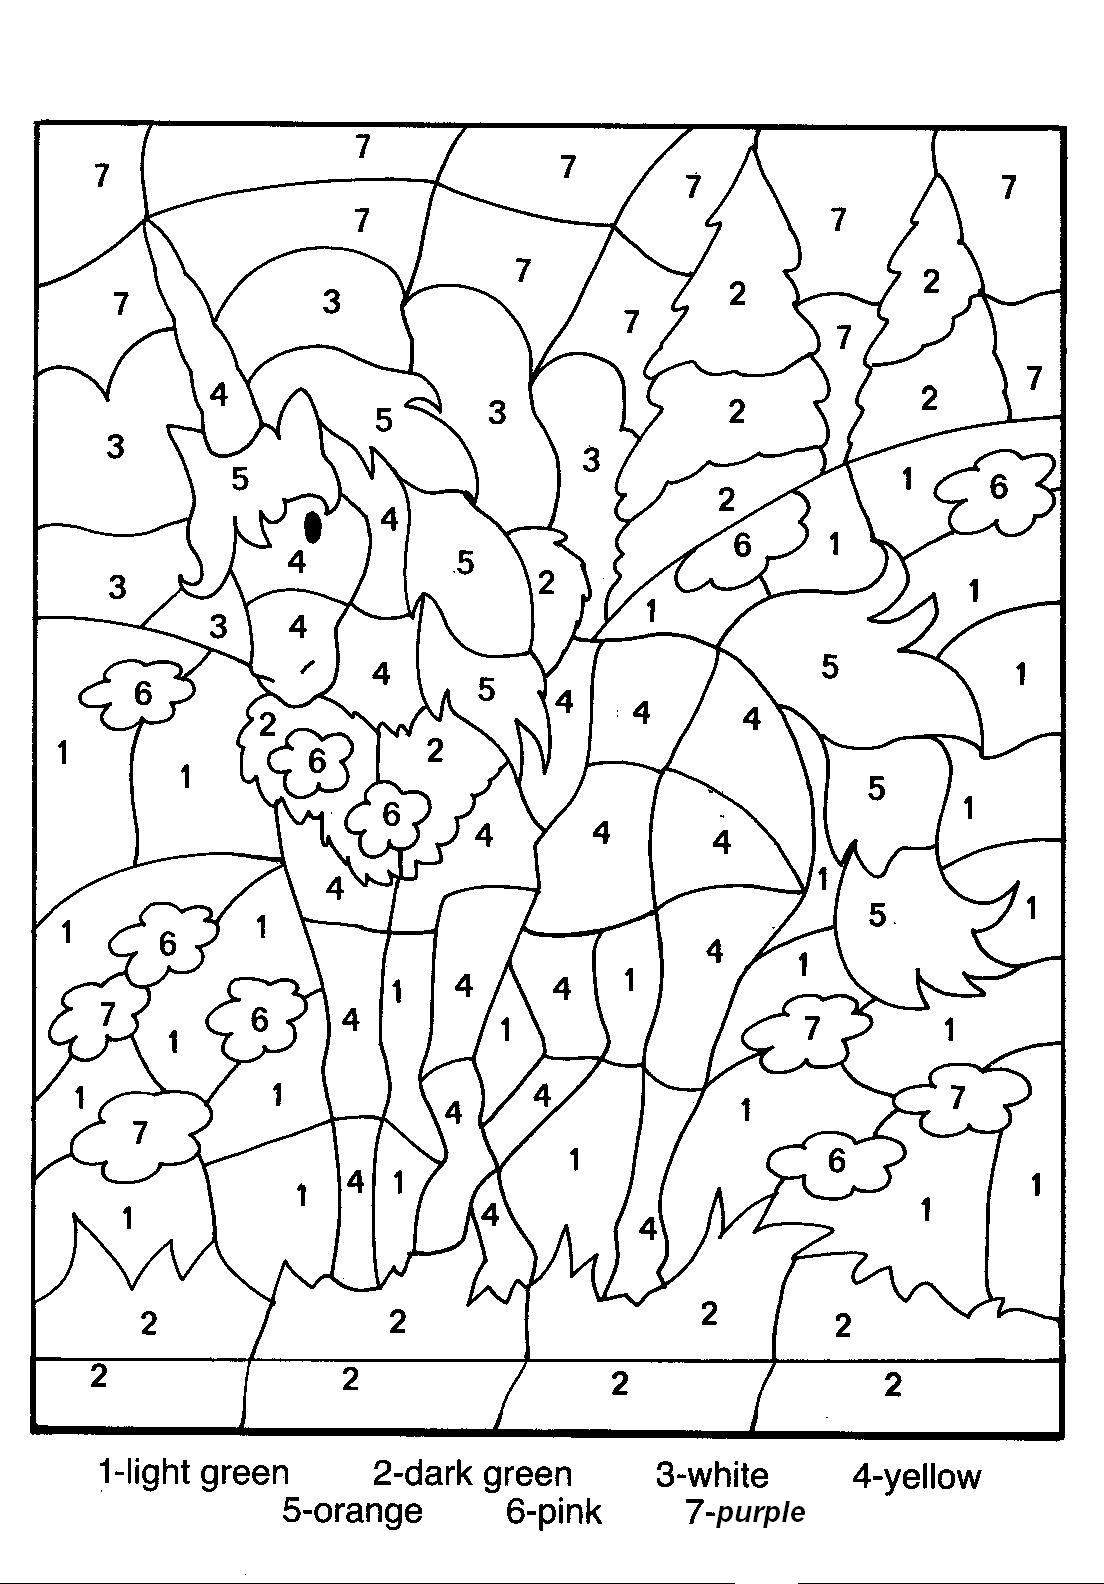 coloring sheets color by number free color by numbers worksheets activity shelter sheets color number by coloring